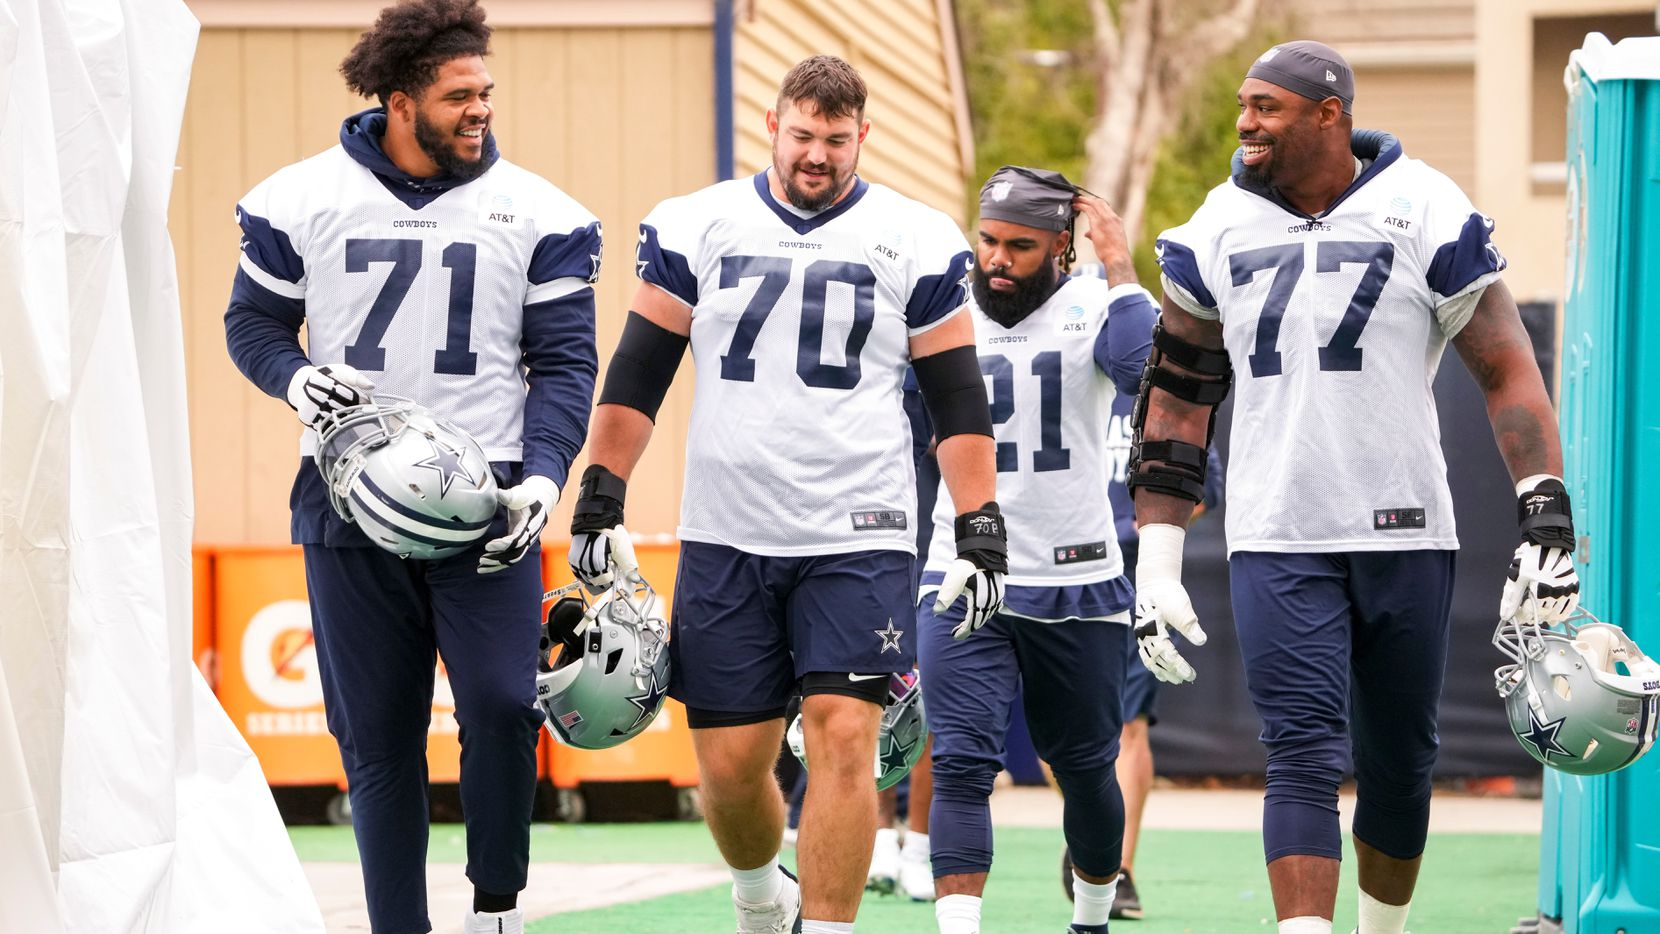 Dallas Cowboys tackle La'el Collins (71), guard Zack Martin (70), running back Ezekiel Elliott (21) and tackle Tyron Smith (77) take the field for a practice at training camp on Saturday, July 24, 2021, in Oxnard, Calif.